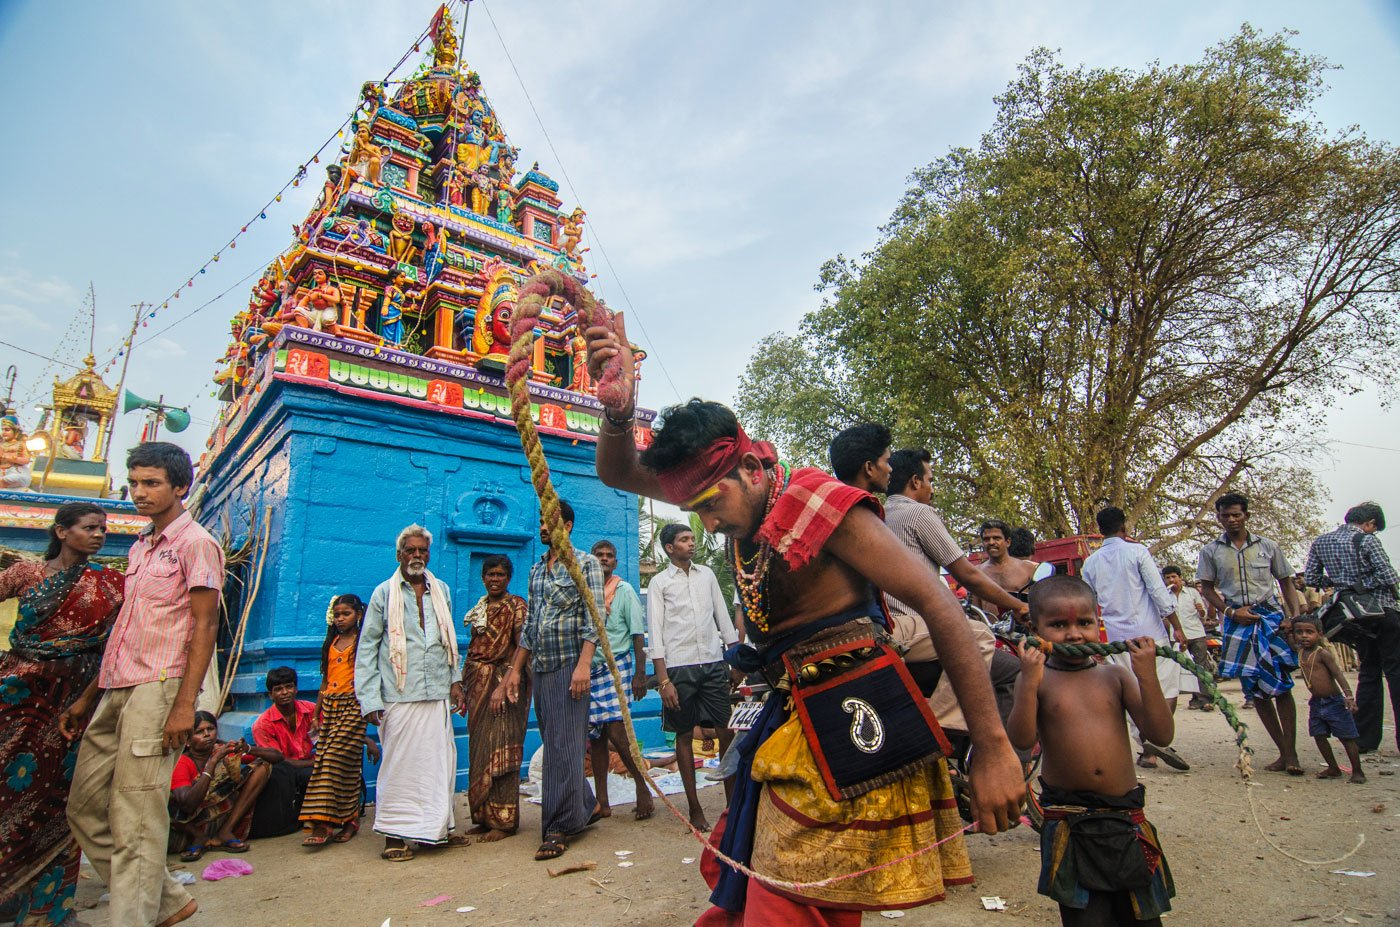 The temple dedicated to Lord Aravan (known locally as Koothandavar) is in Koovagam village, about 30-40 kilometres from Viluppuram town in Tamil Nadu. A man whipping himself in front of a temple.